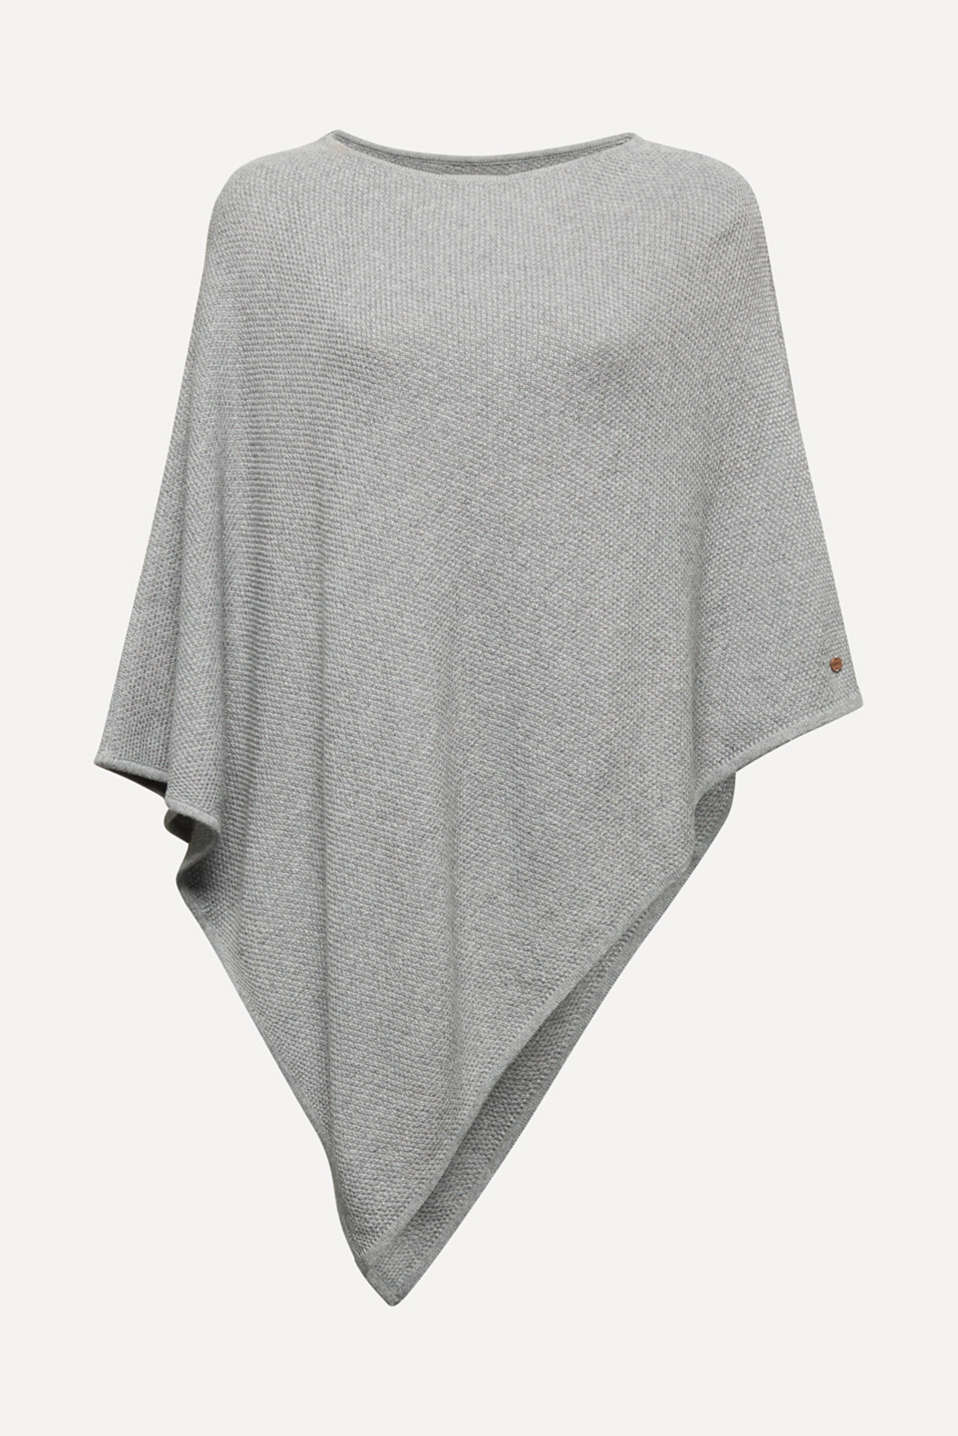 Textured knit poncho, MEDIUM GREY, detail image number 0